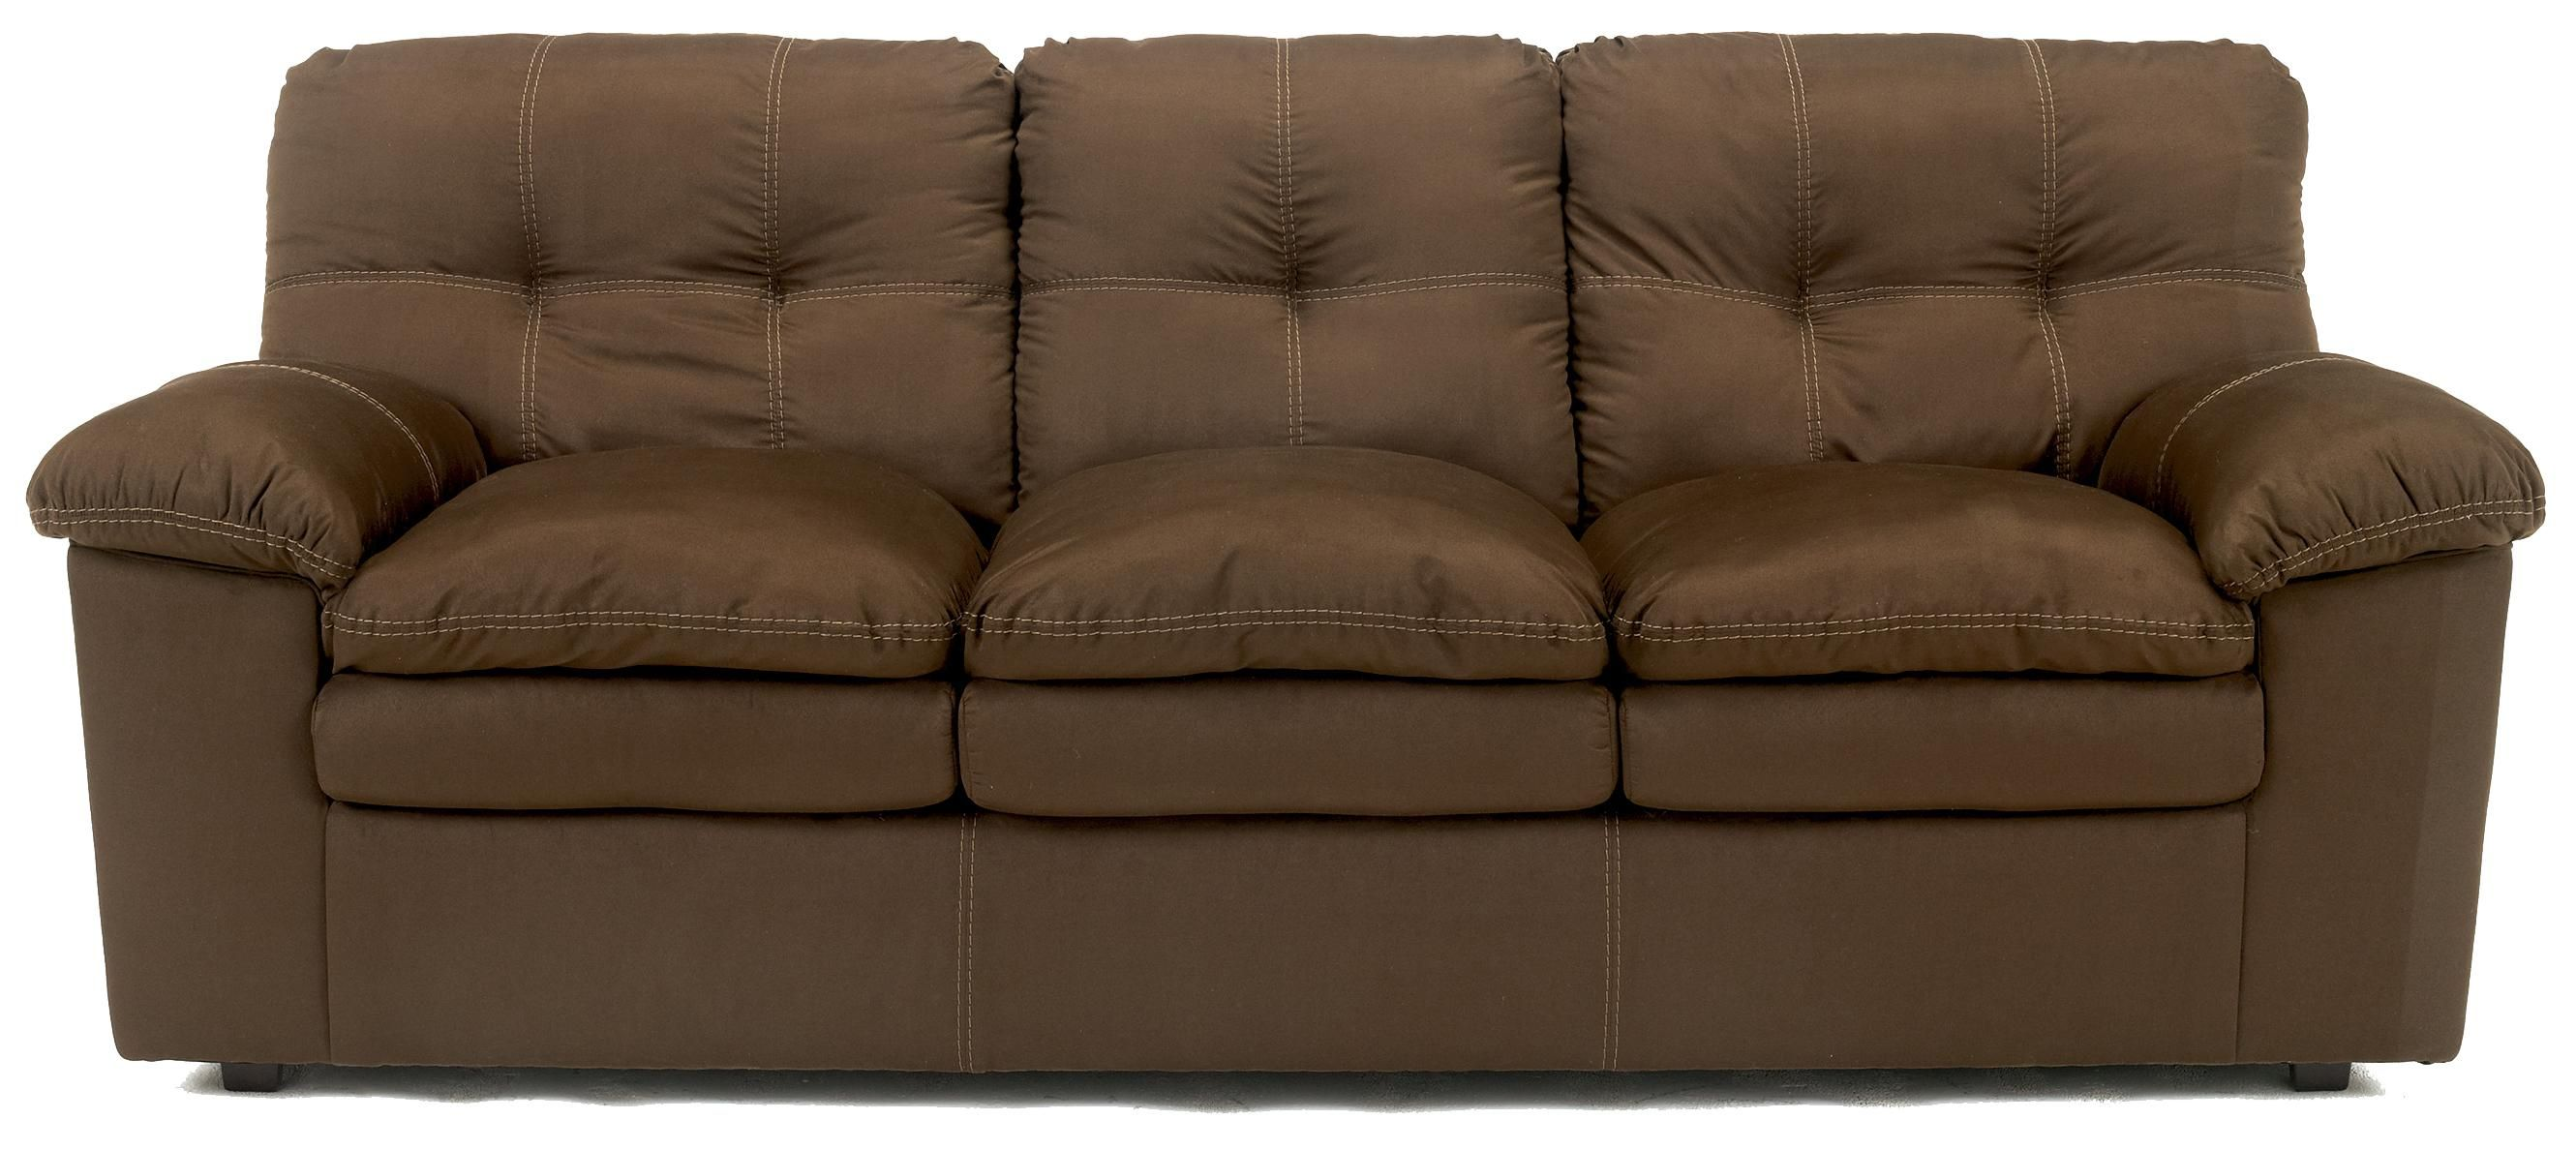 Mercer Cafe Stationary Sofa By Signature Design By